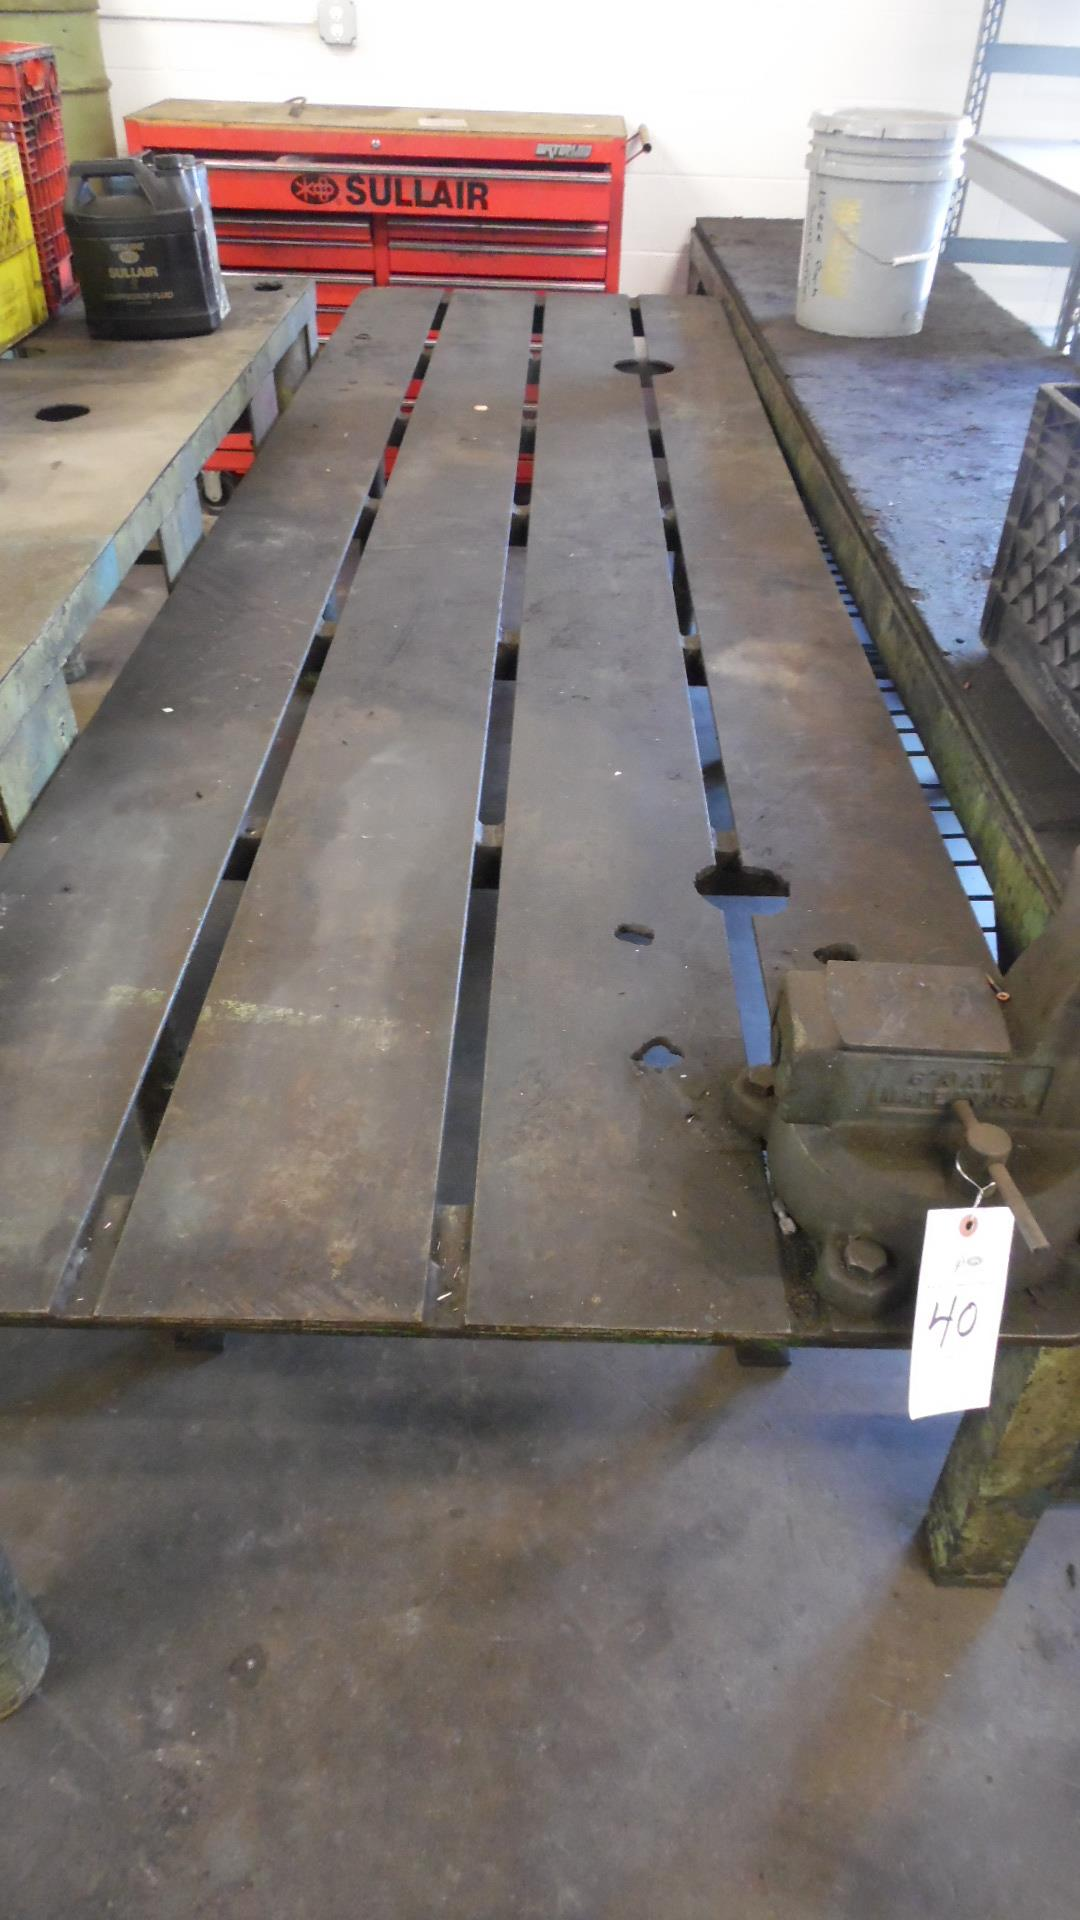 Lot 40 - 9 FT. TABLE w/ VISE